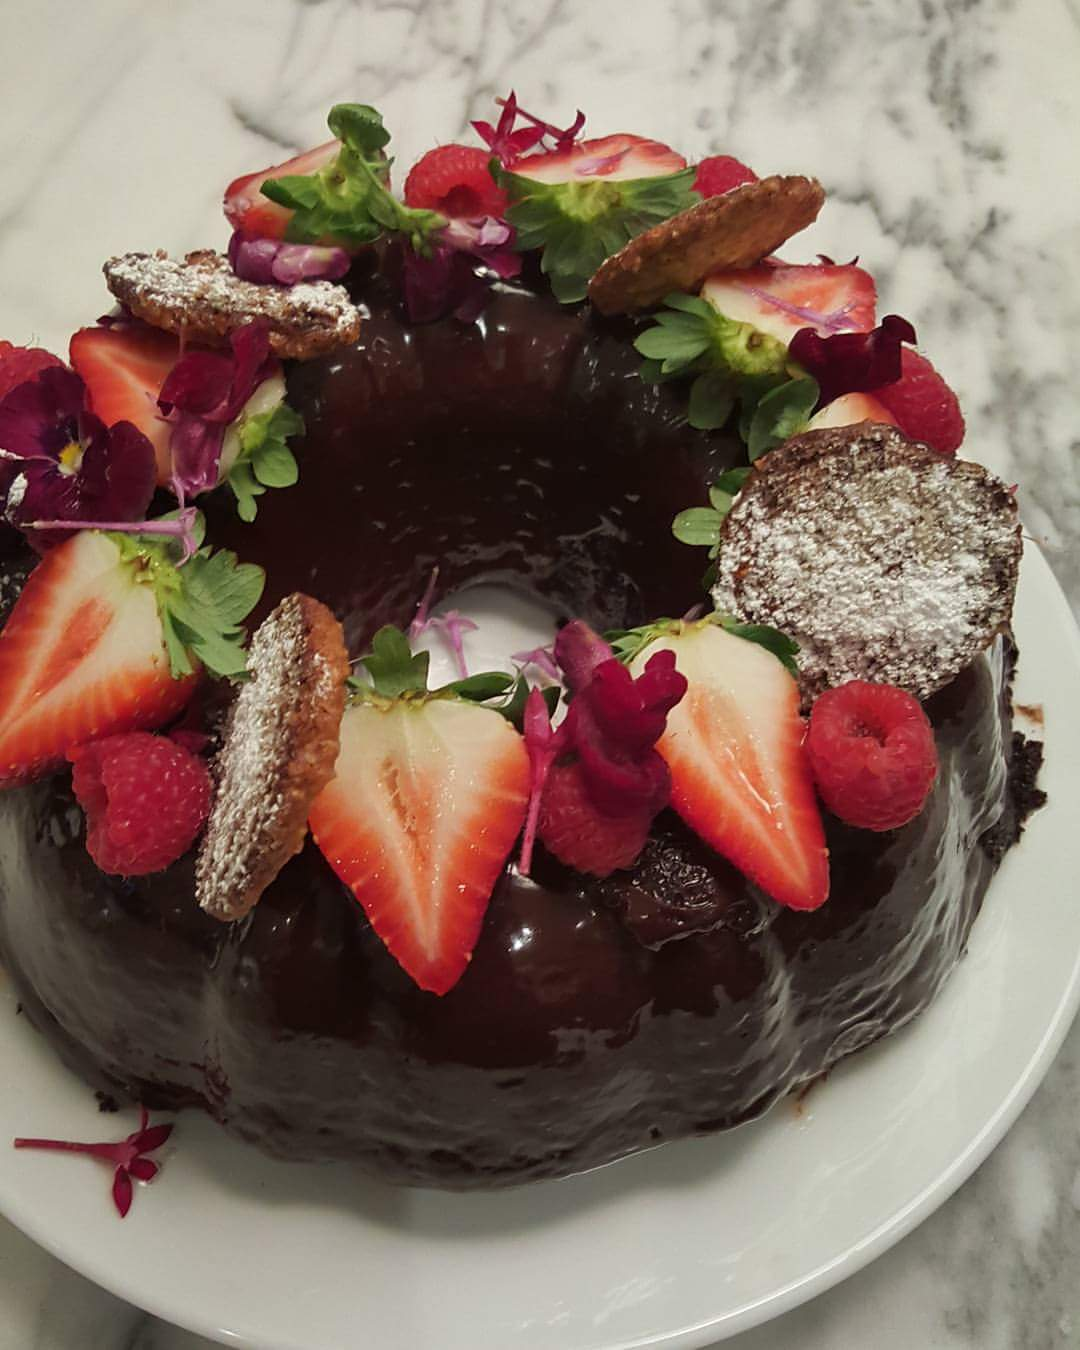 Garnish with ganache , fresh berries and flowers or what ever makes you happy! Just enjoy your cake. You made it!